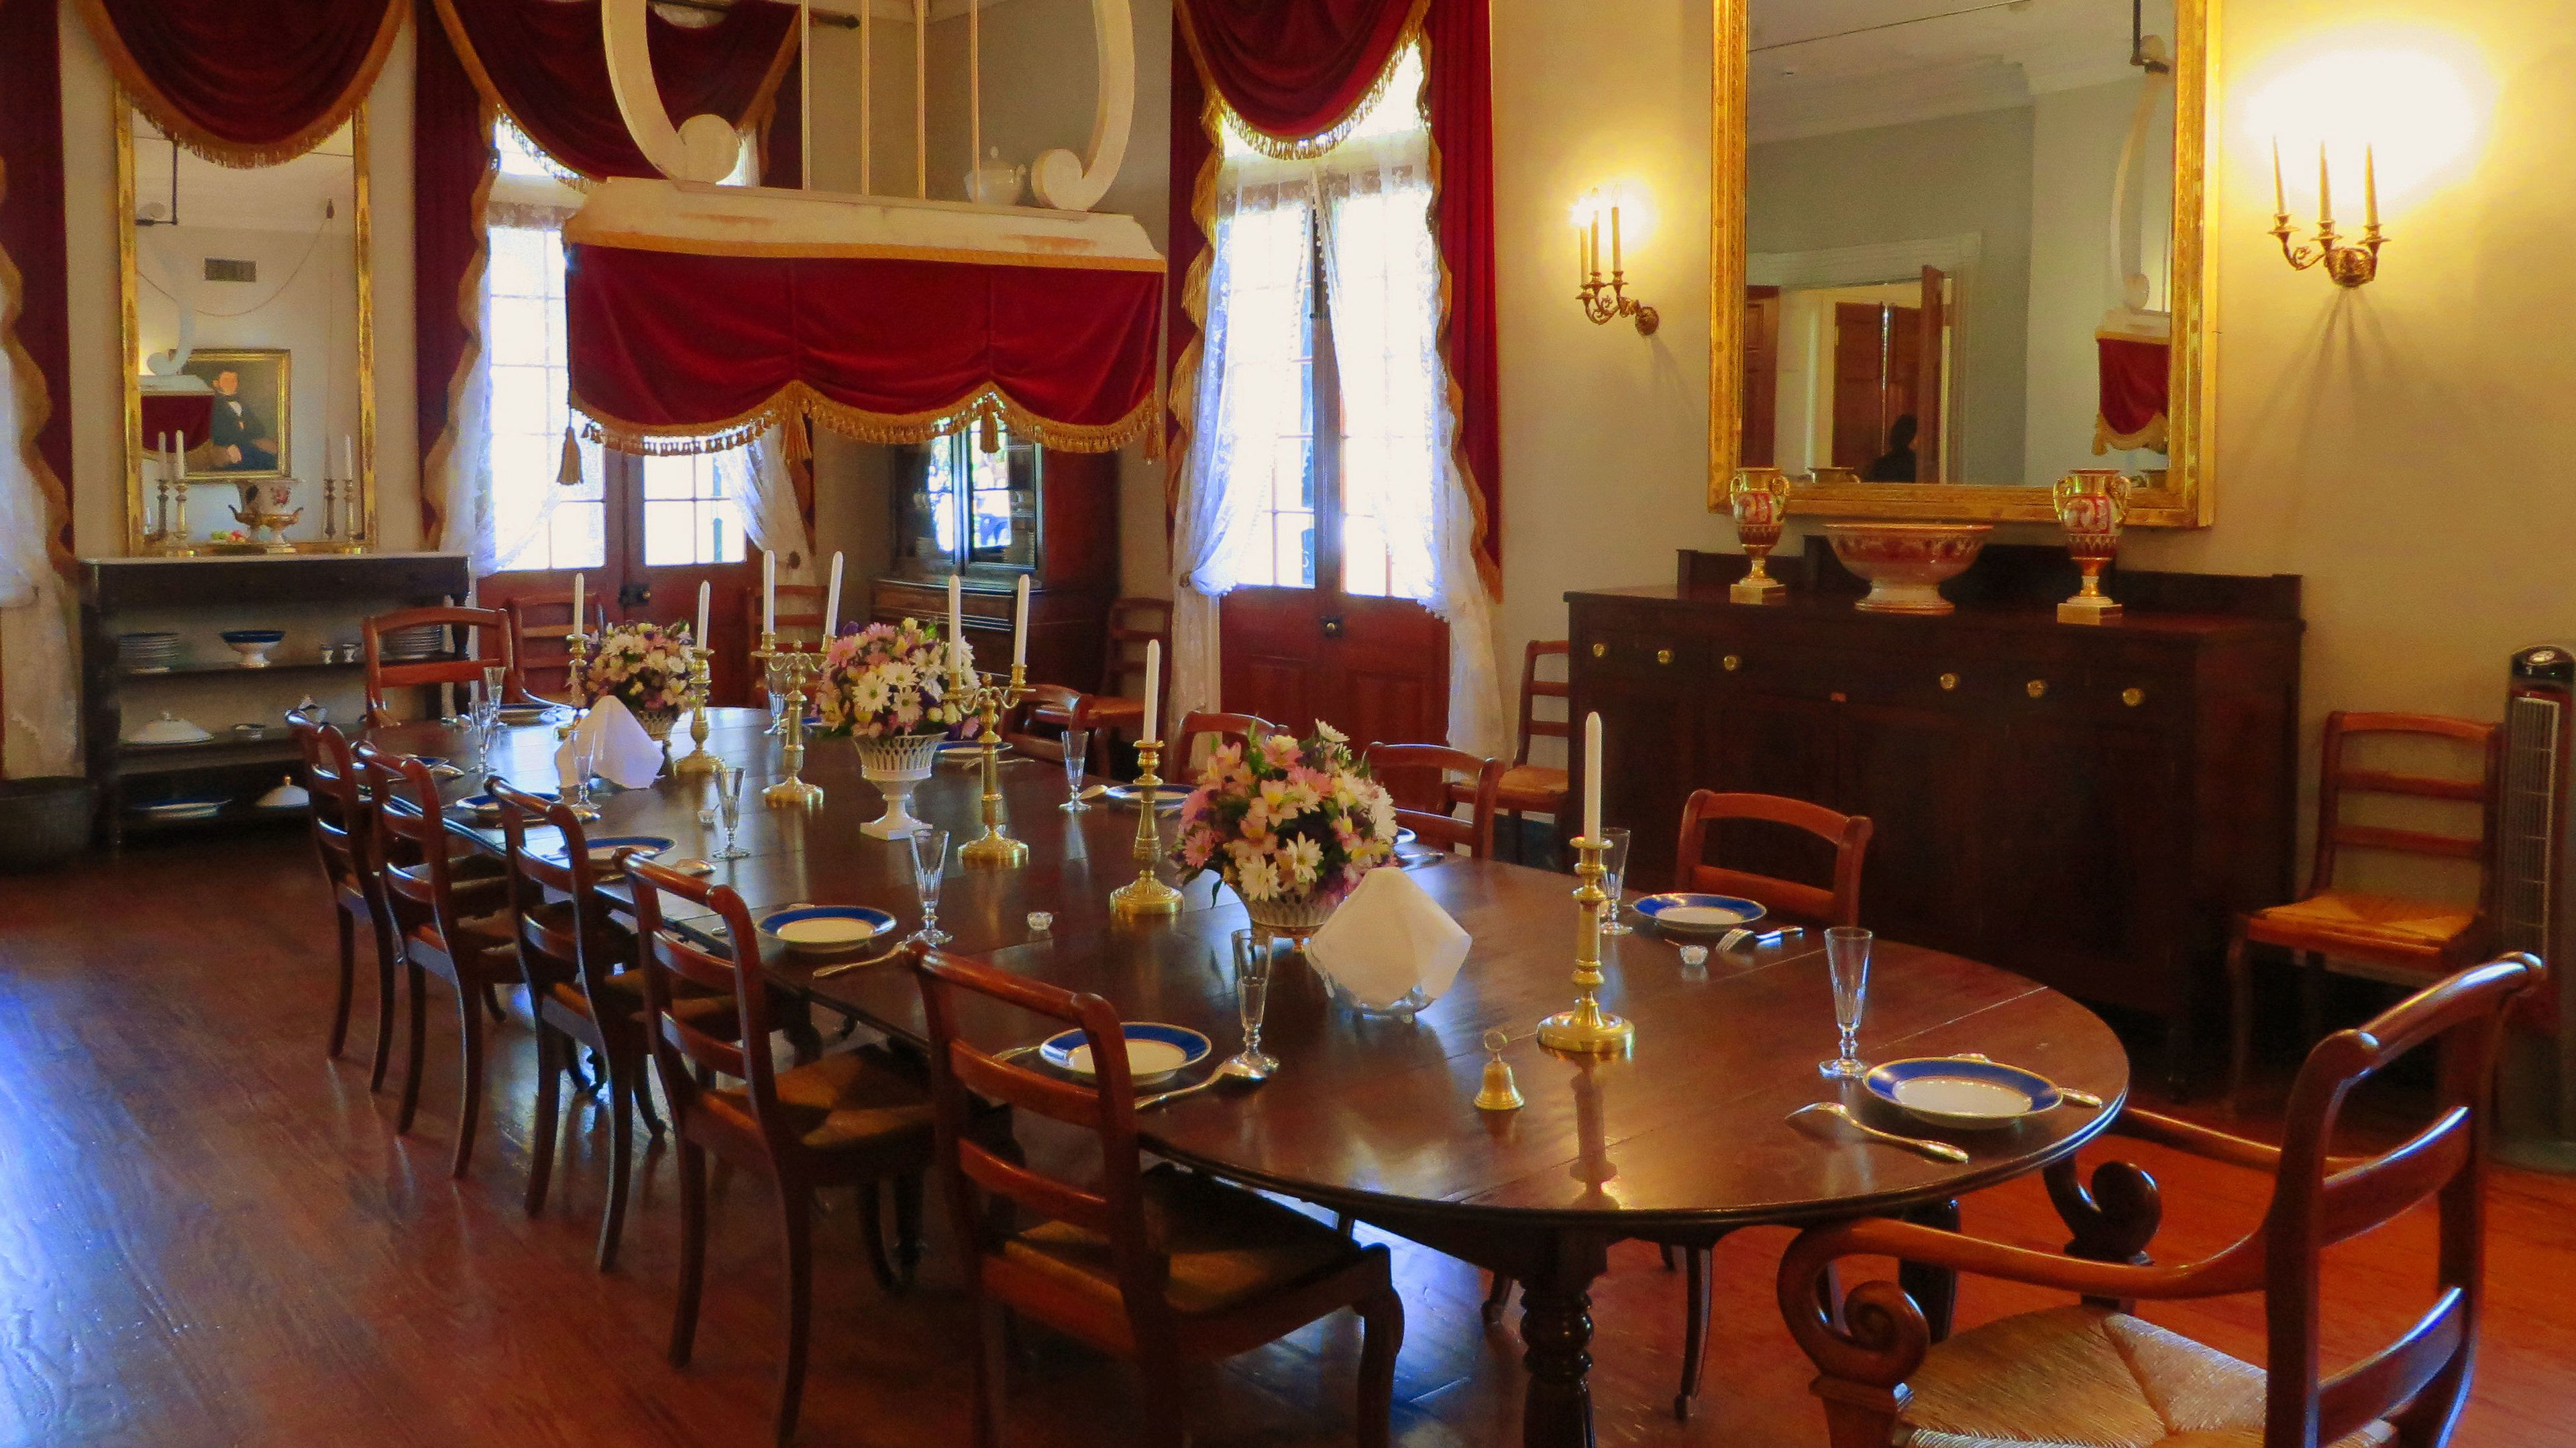 interior dining area in new orleans